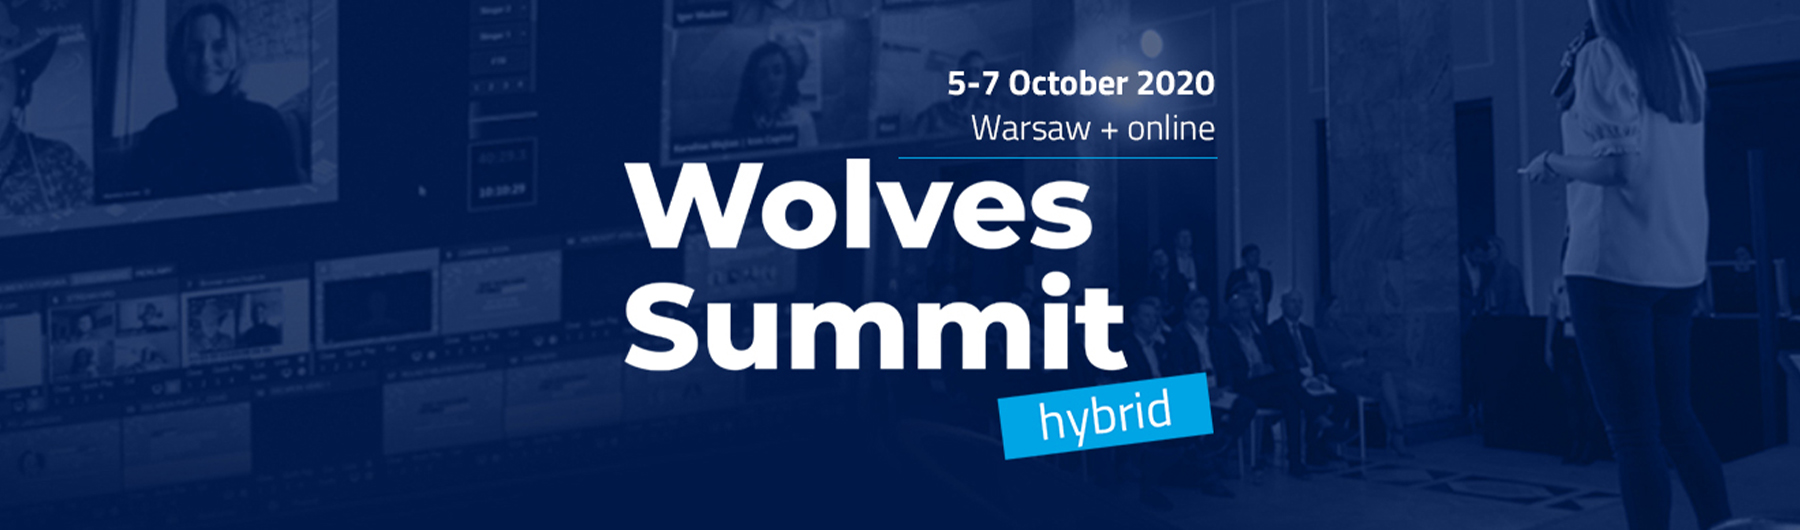 Wolves Summit October 2020